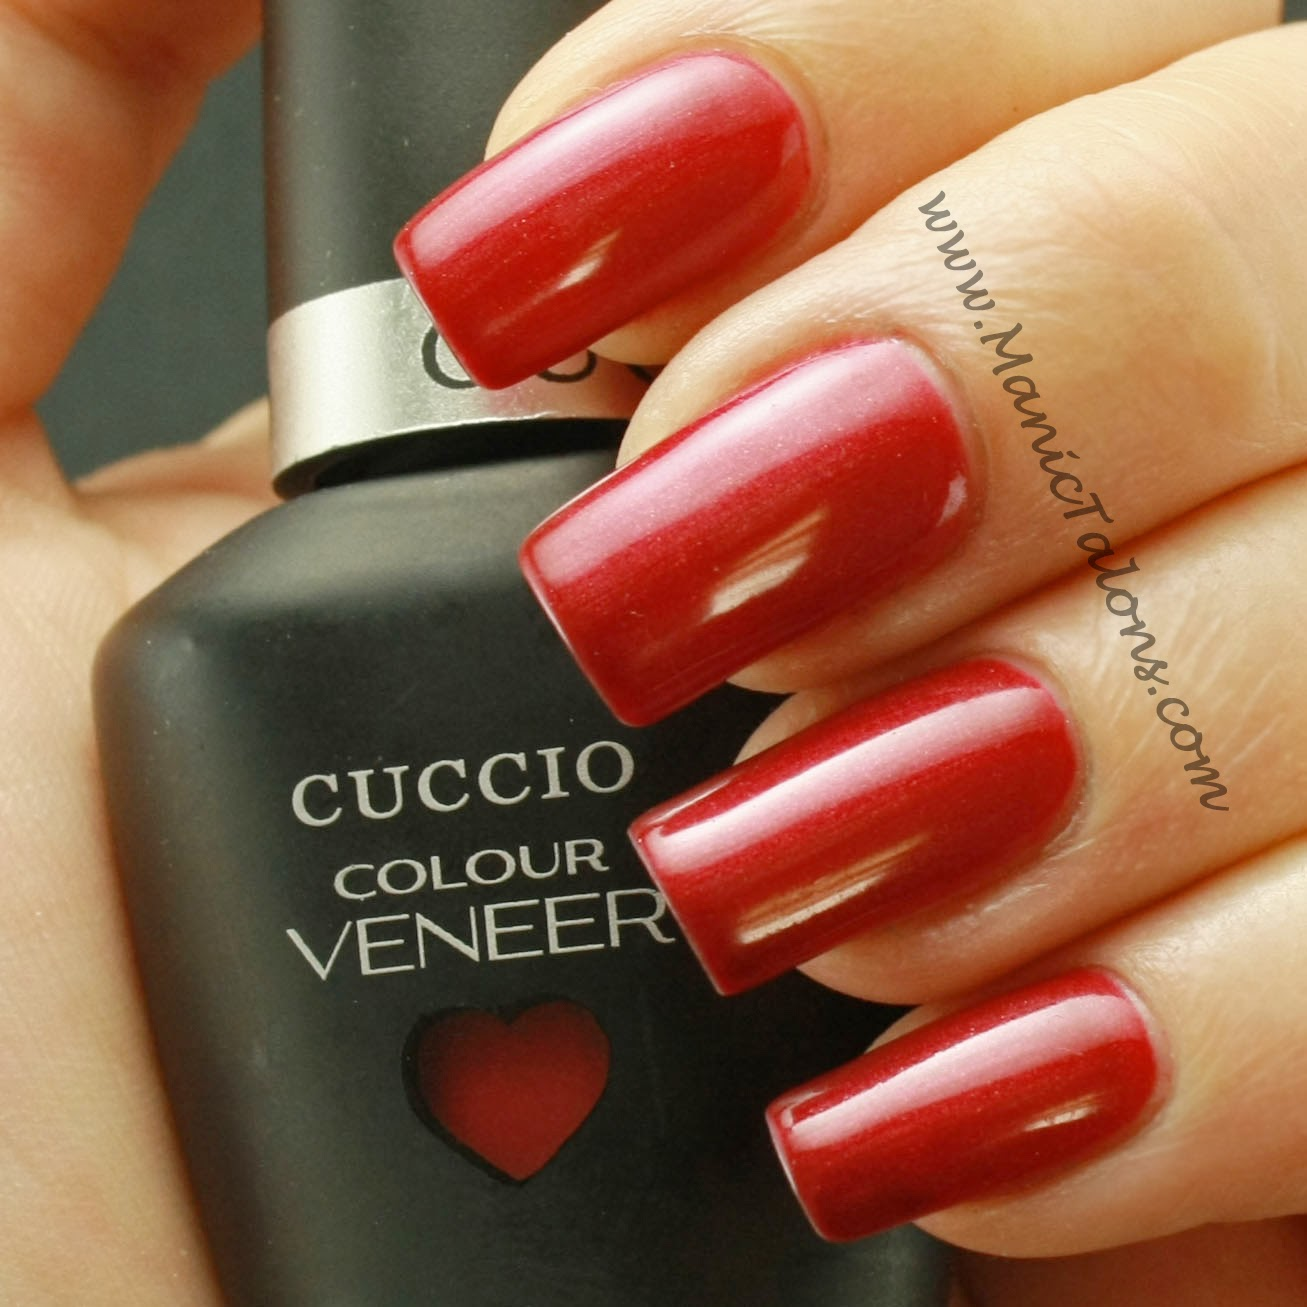 Manic Talons Nail Design: Cuccio Match Maker Swatches and Review